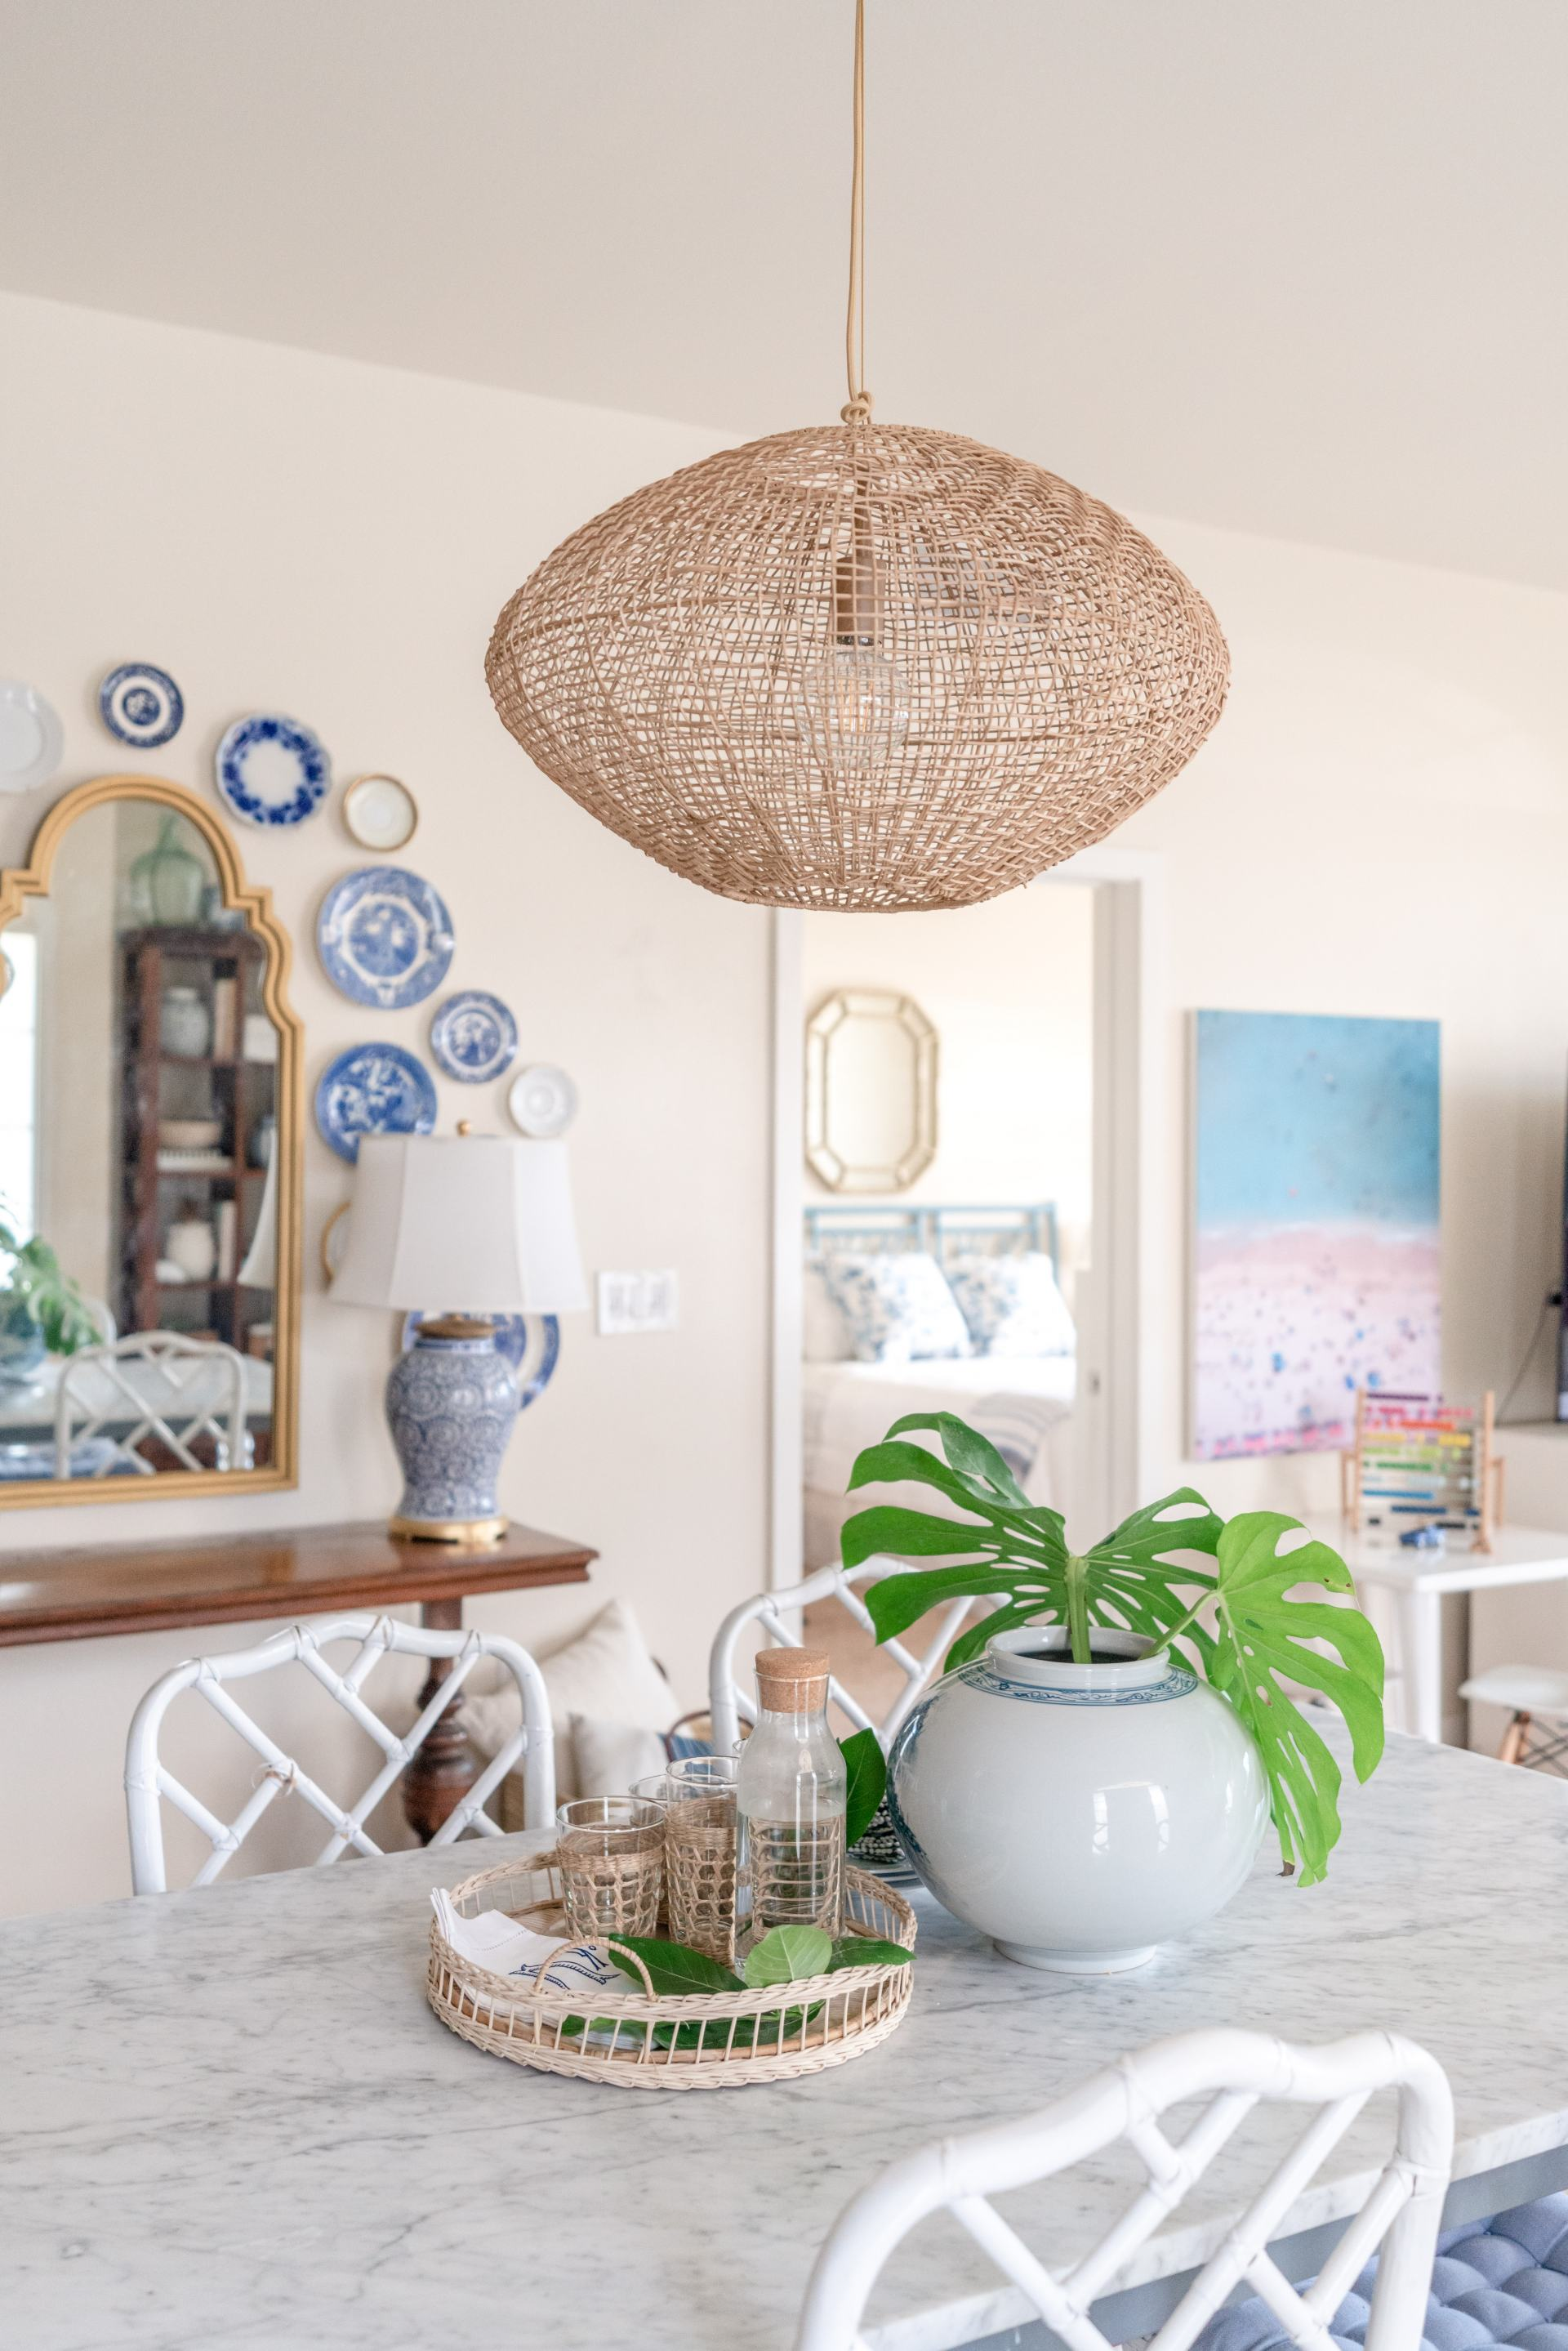 the everymom home tour - hawaii home - beachy decor - woven chandelier - plate wall - plates hanging on wall - plate gallery wall - blue and white plates - aerial photography - stripes and whimsy - katie vail home